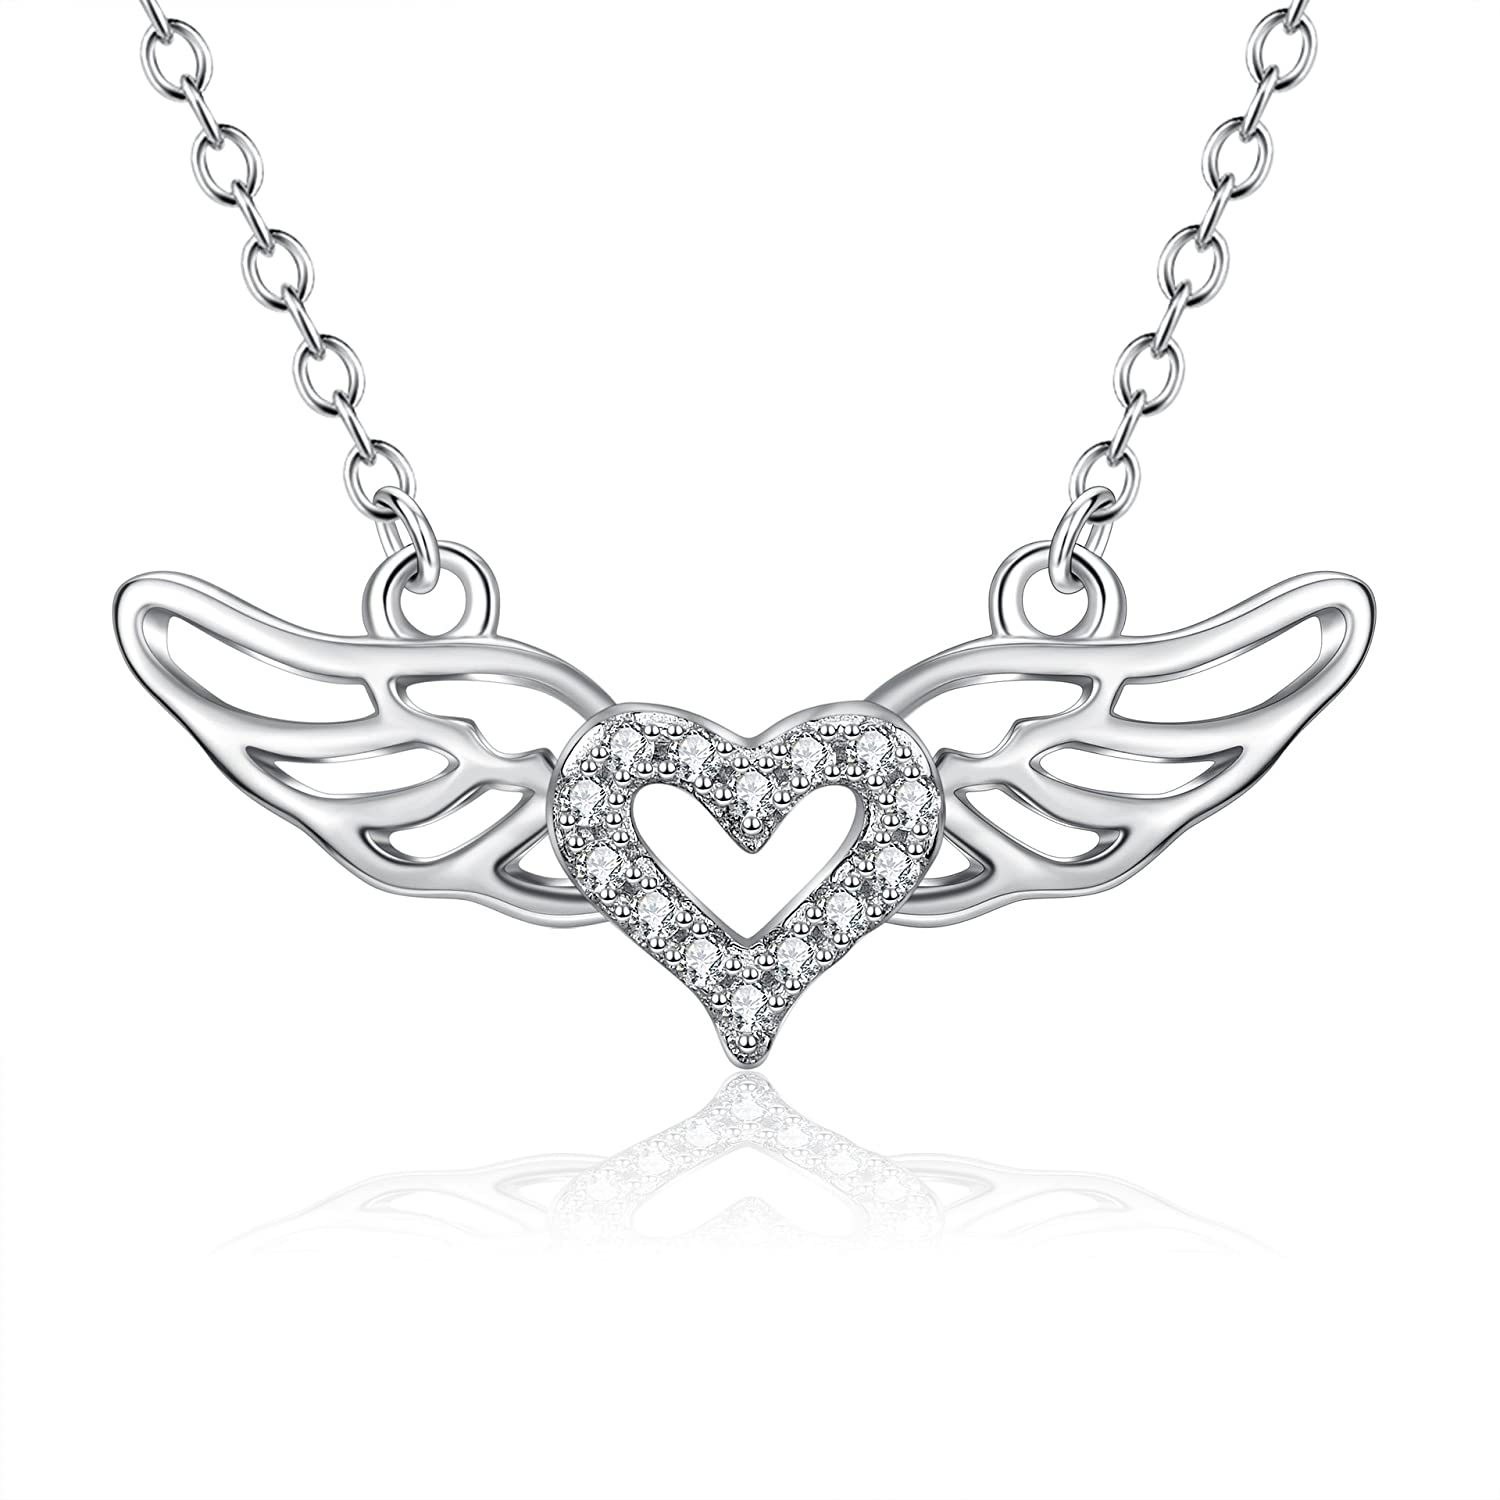 amazon poplyke sterling silver angel wings heart pendant Right- Wing amazon poplyke sterling silver angel wings heart pendant necklace for women girls jewelry